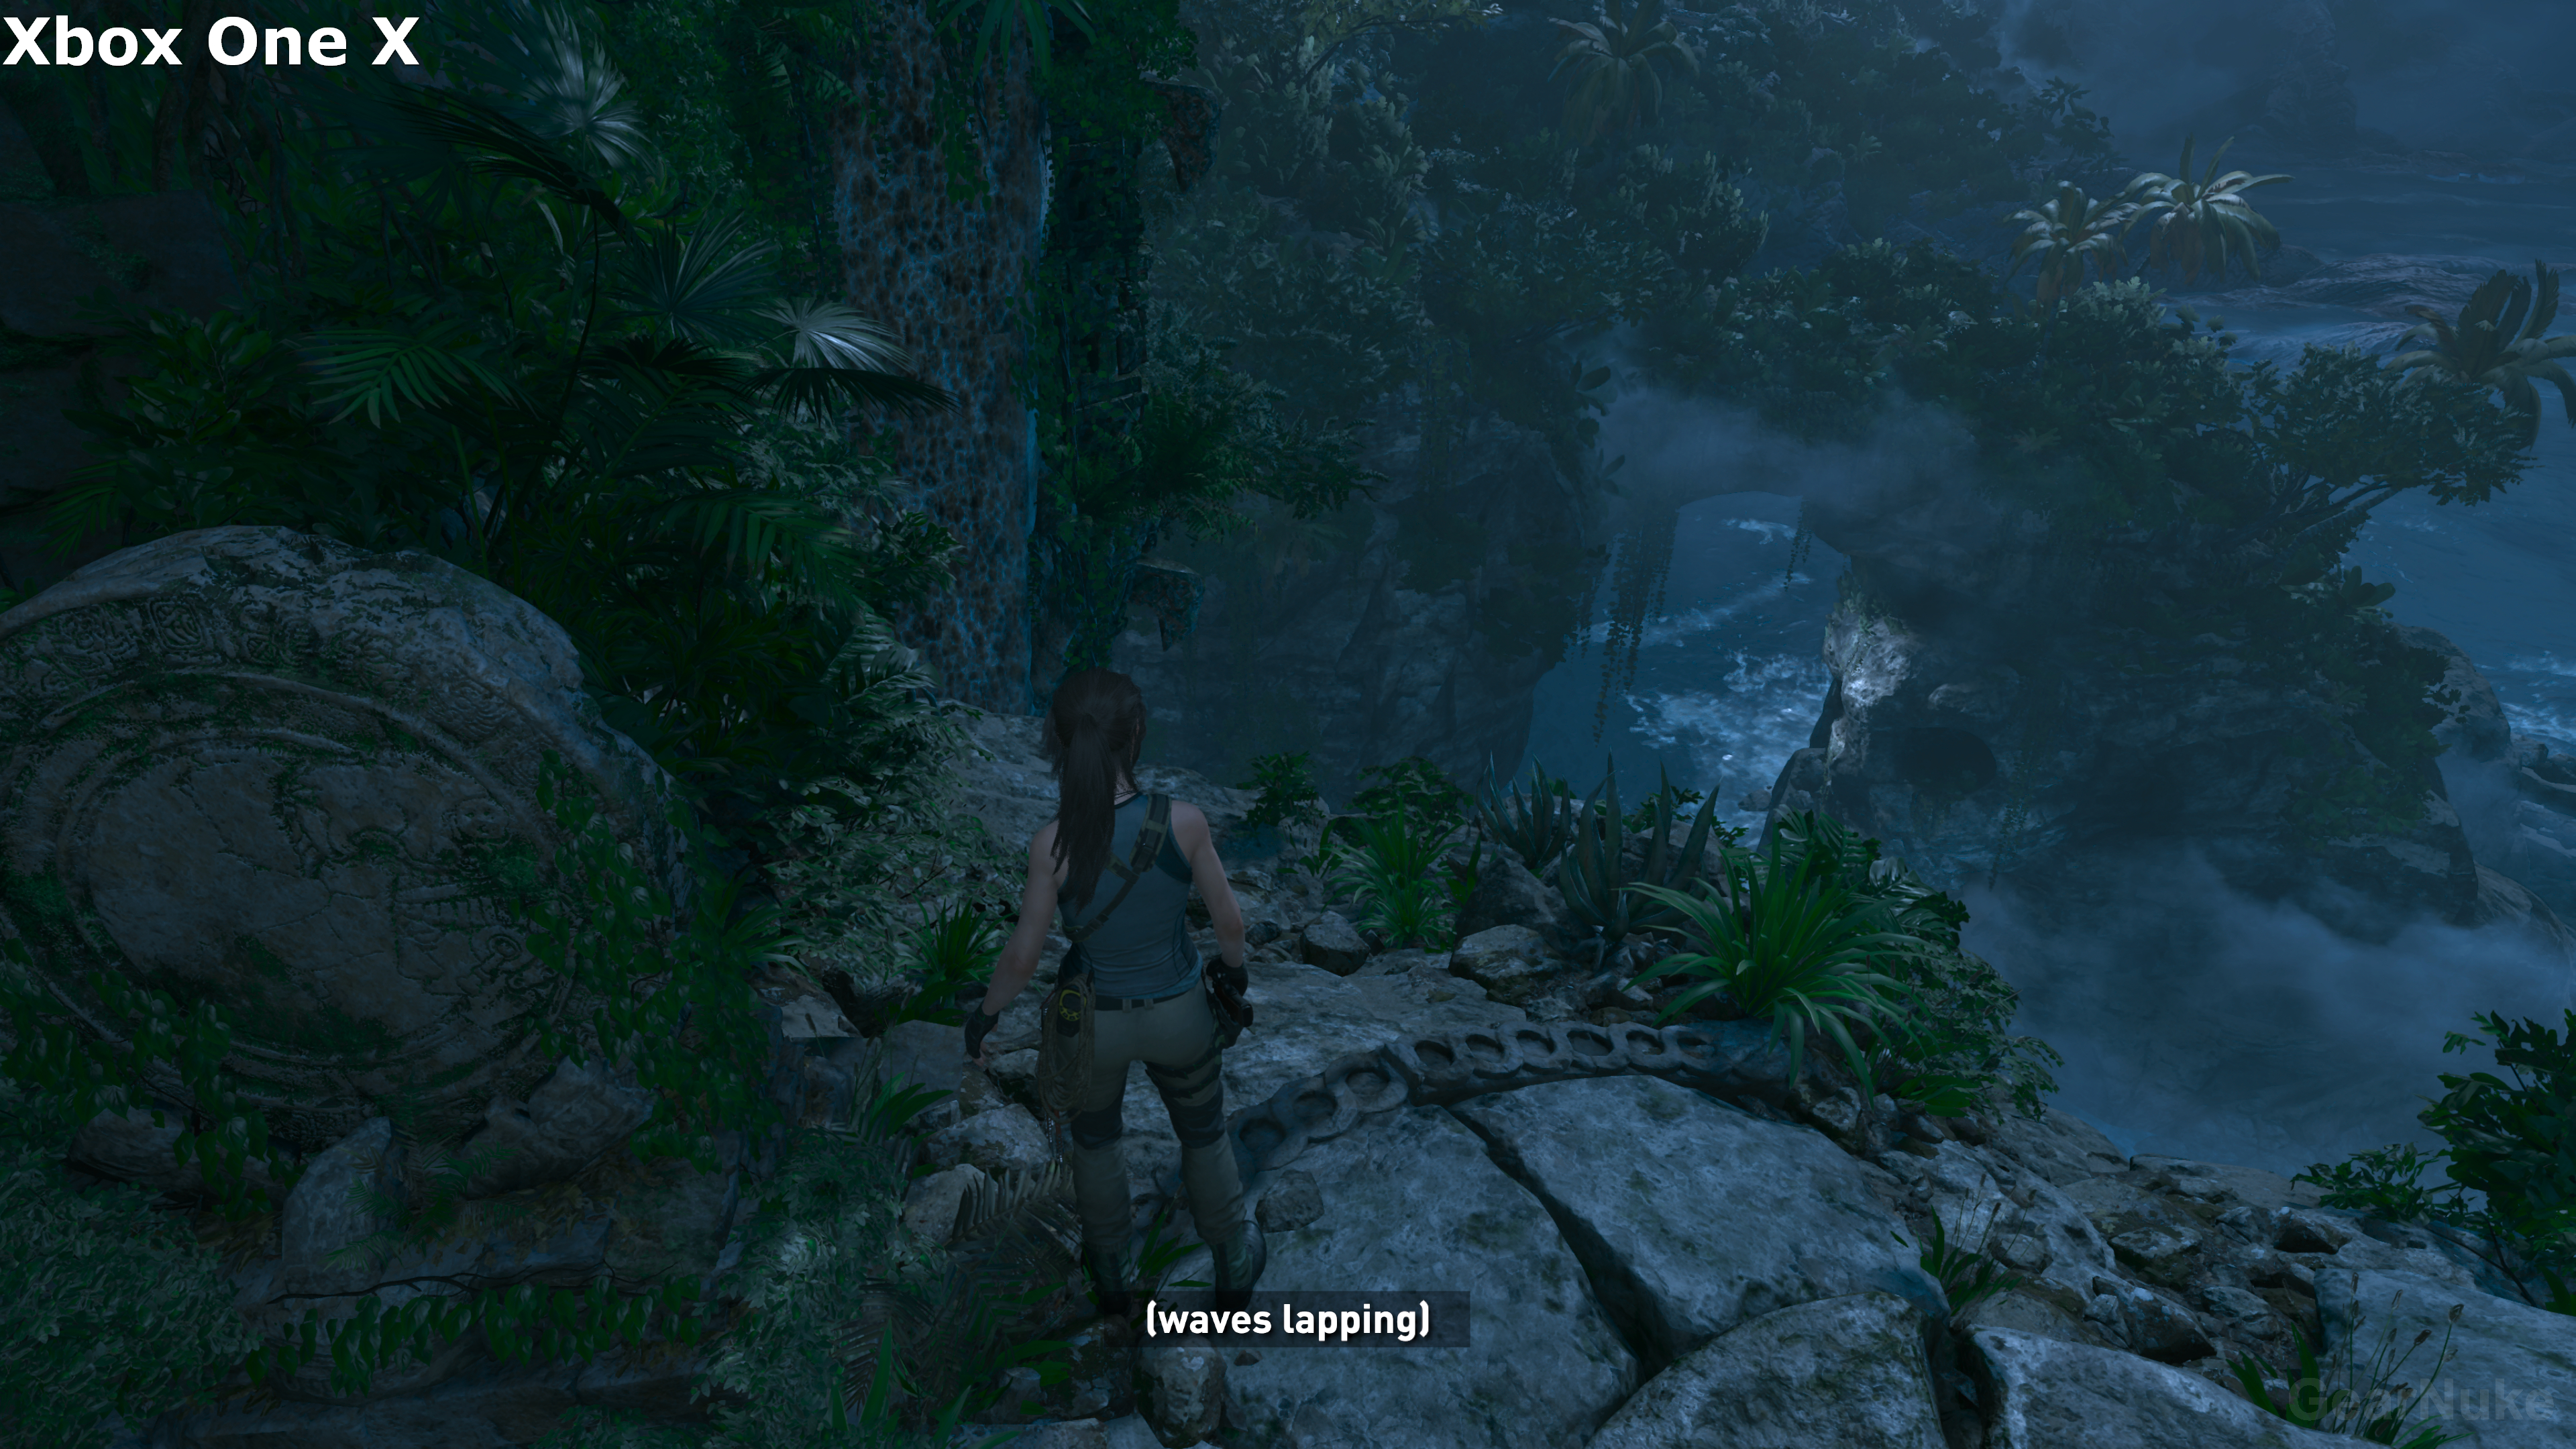 shadow-of-the-tomb-raider-ps4-pro-vs-xbox-one-x-9-1